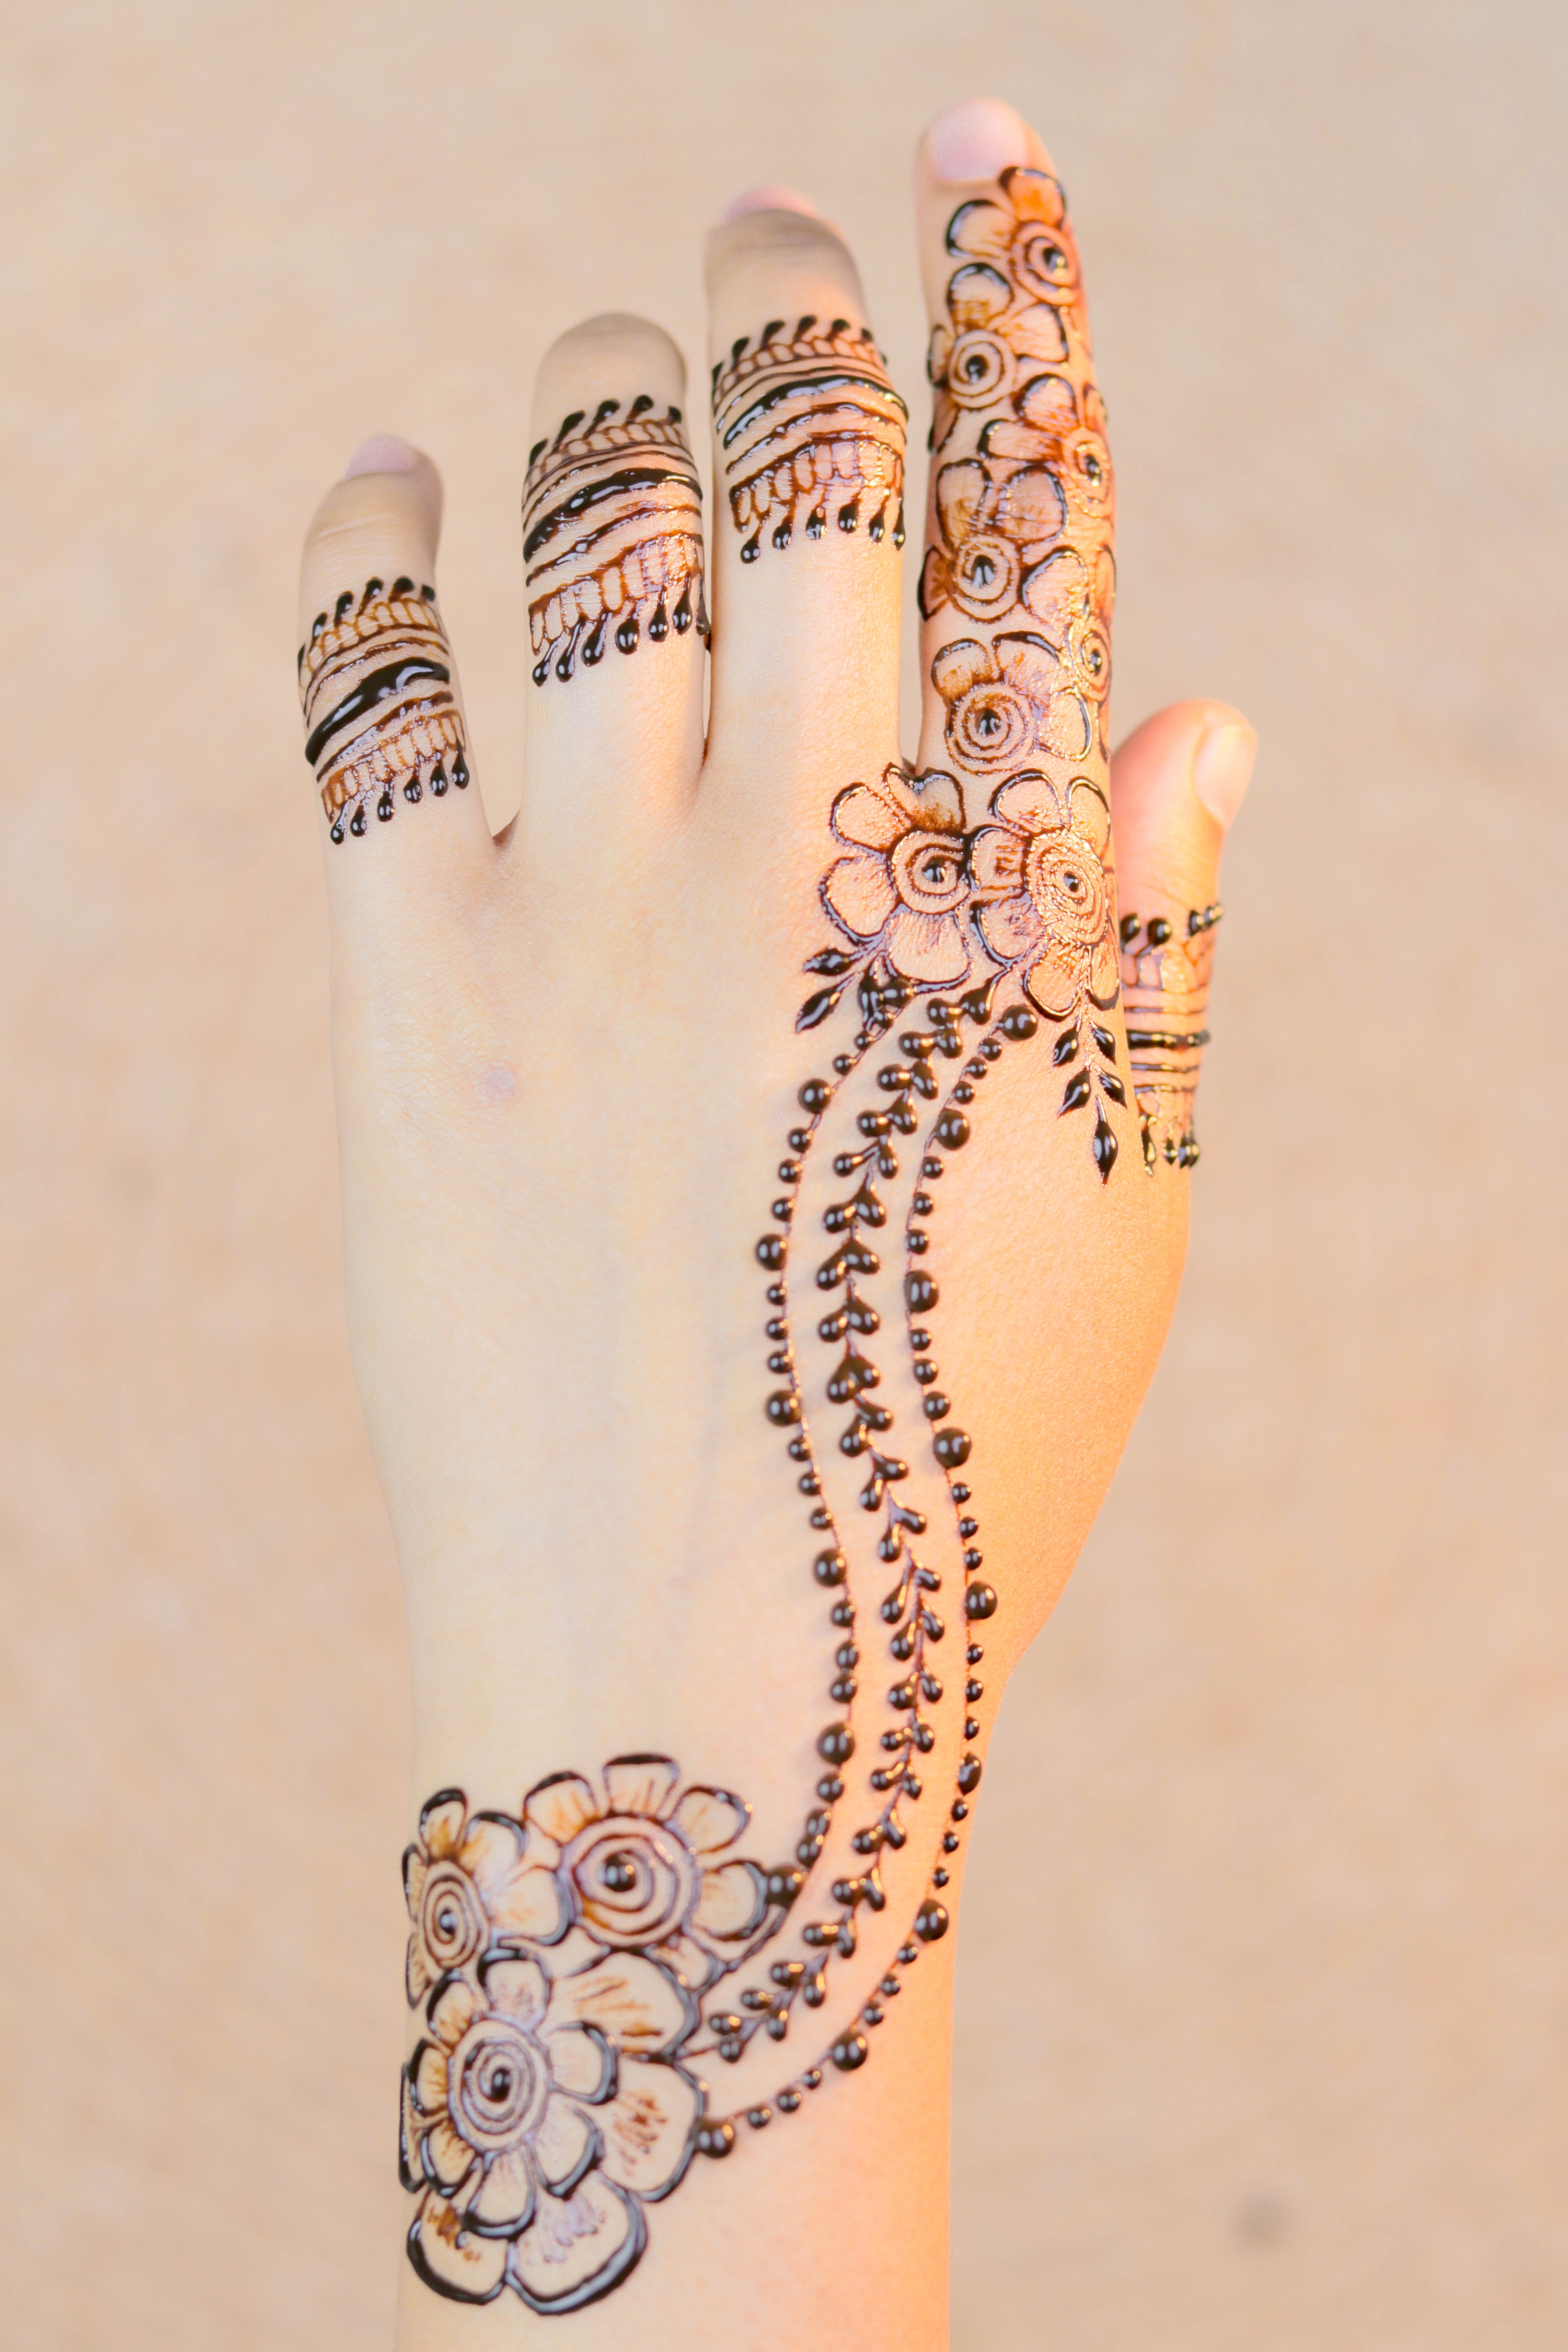 Free Stock Photo Of Arabic Latest Mehndi Design Tutorial Diy Mehndi Designs 2020 How To Apply Henna